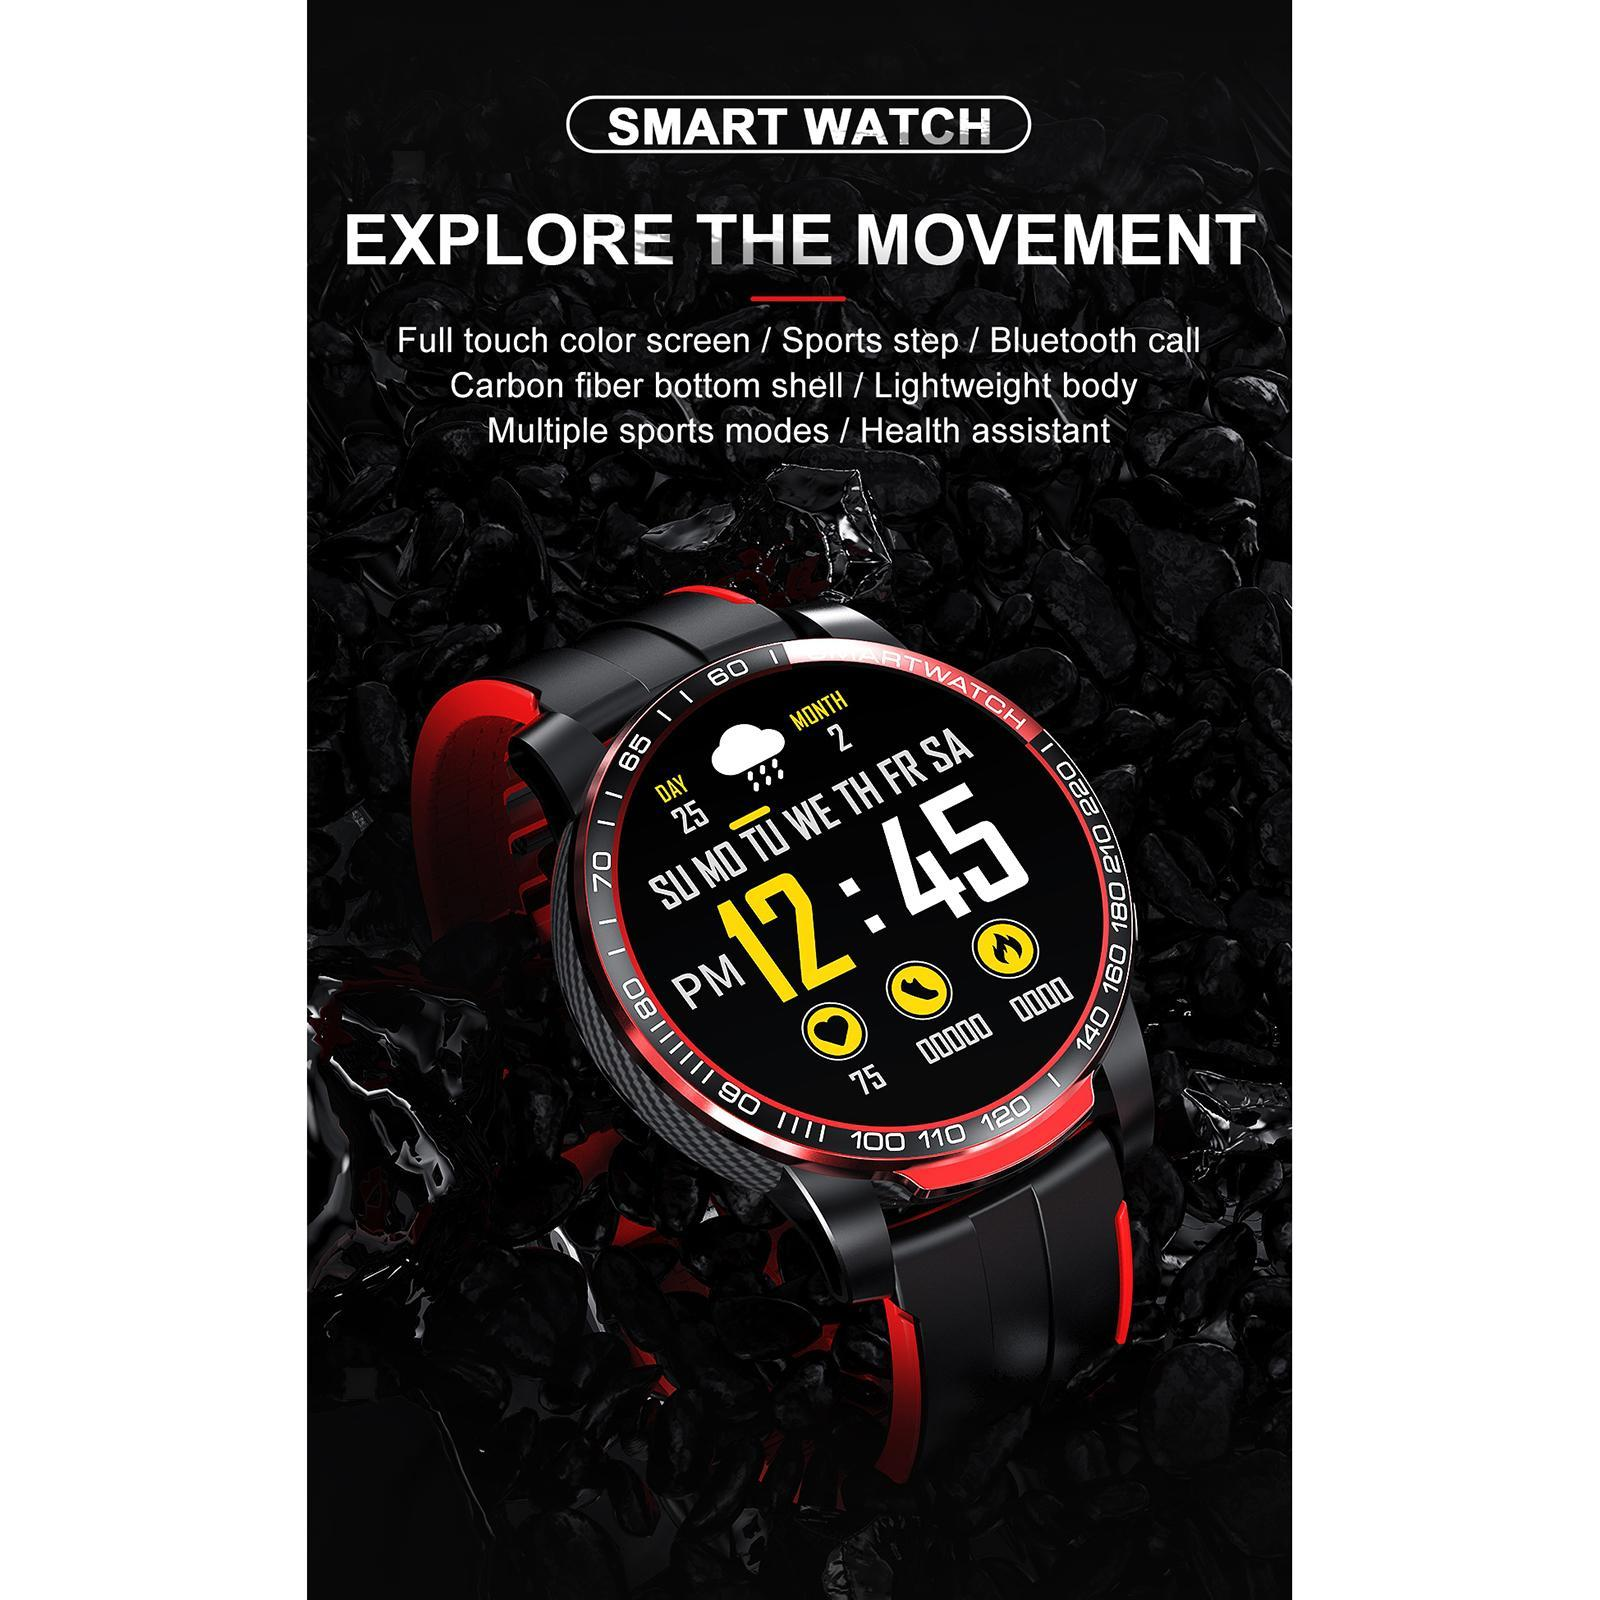 Hommes-Smart-Watch-Bluetooth-Call-Fitness-Tracker-frequence-cardiaque-sommeil miniature 37